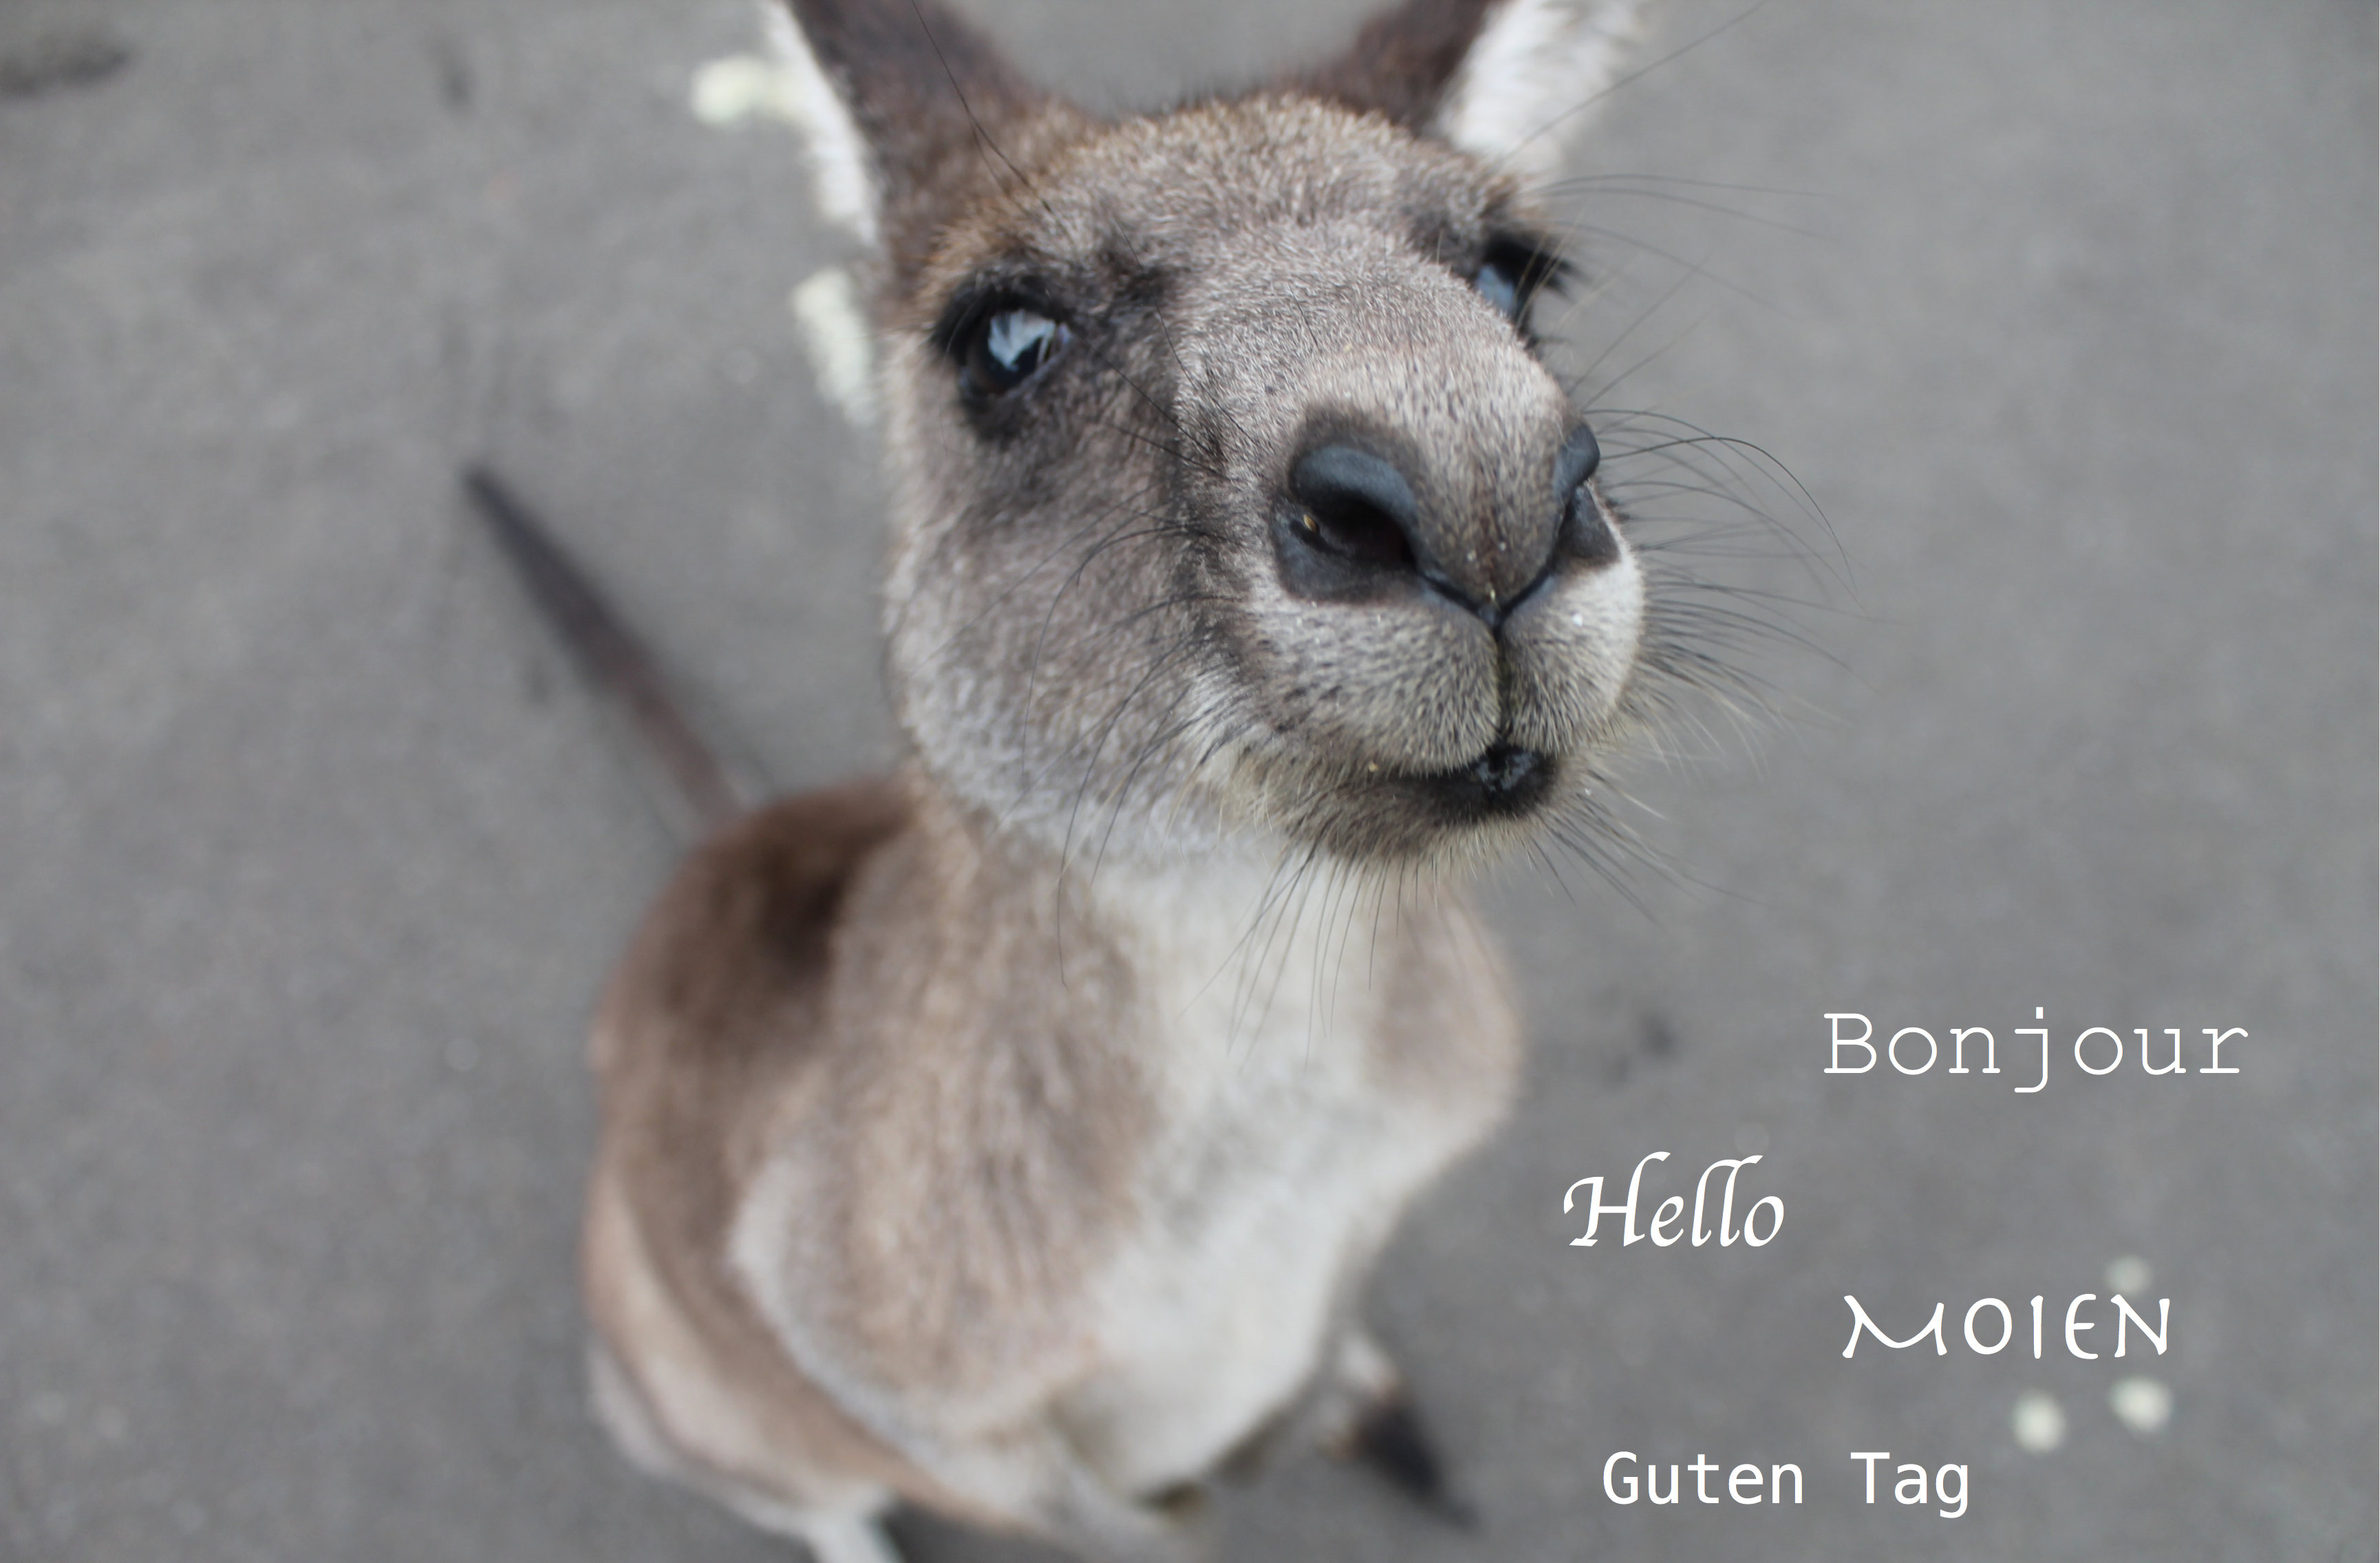 picture of a kangaroo with text 'hello' in 4 languages